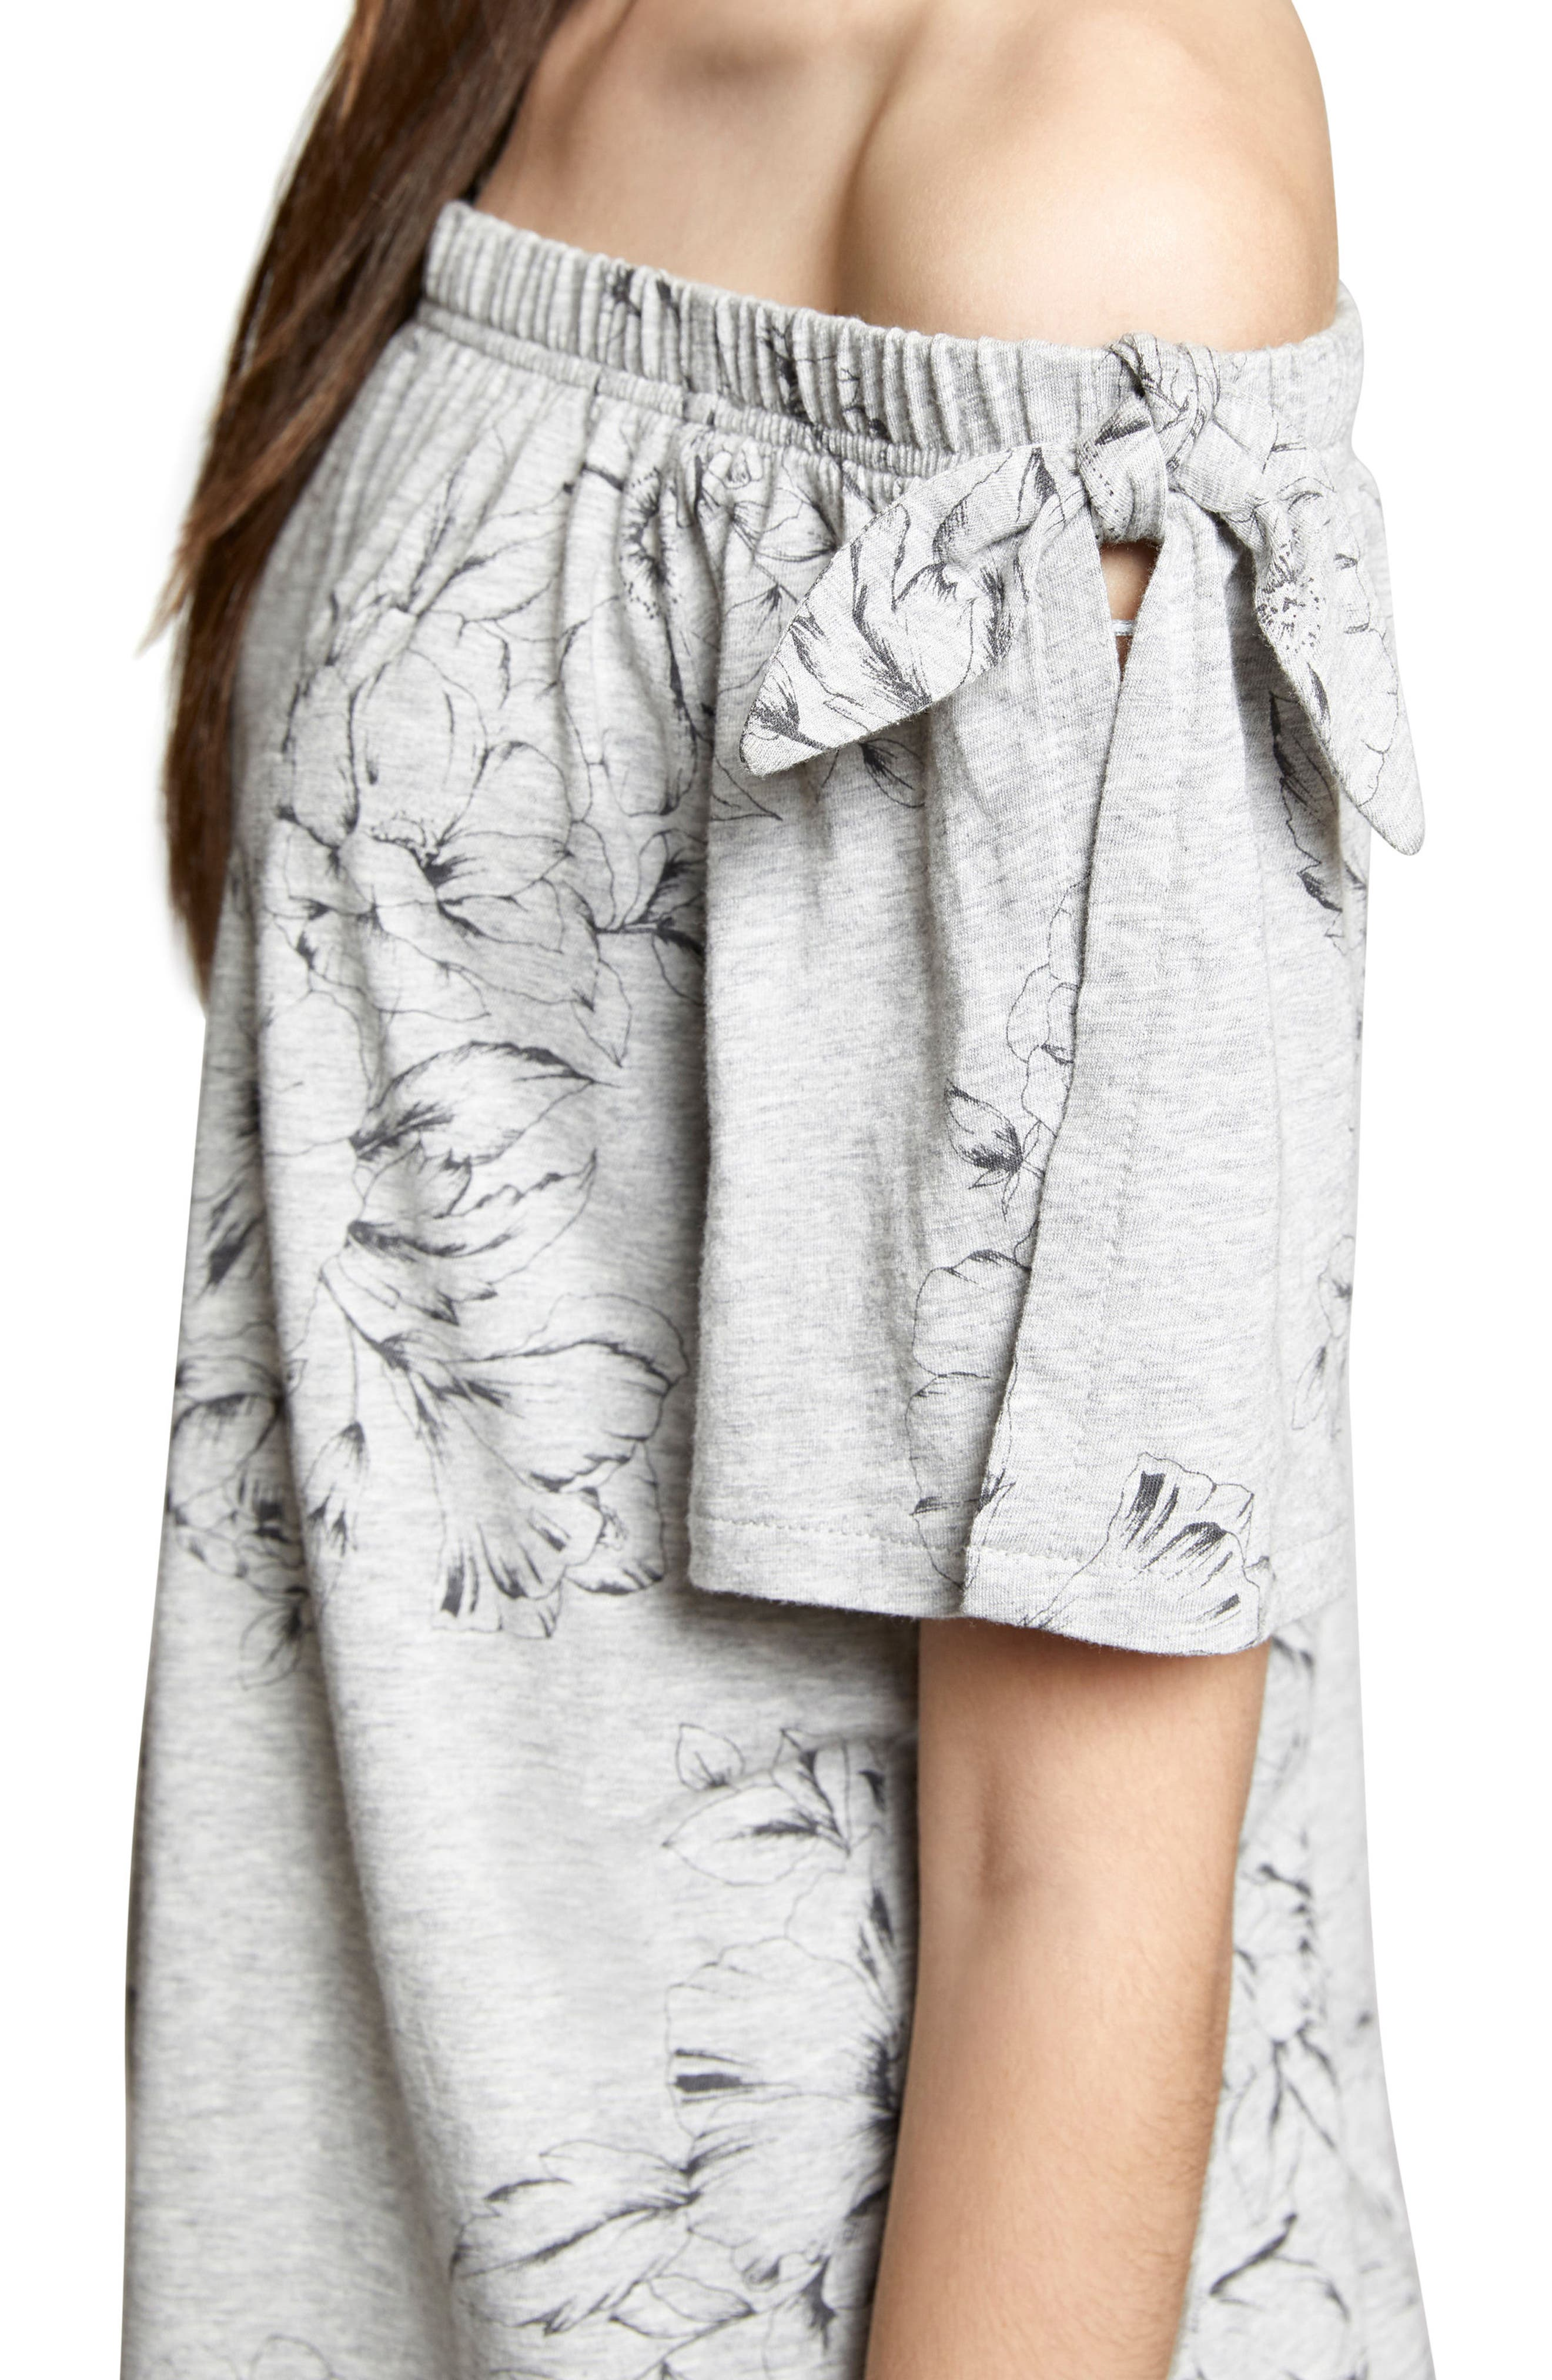 Riviera Off the Shoulder Tie Sleeve Top,                             Alternate thumbnail 4, color,                             Hibiscus/ Heather Grey